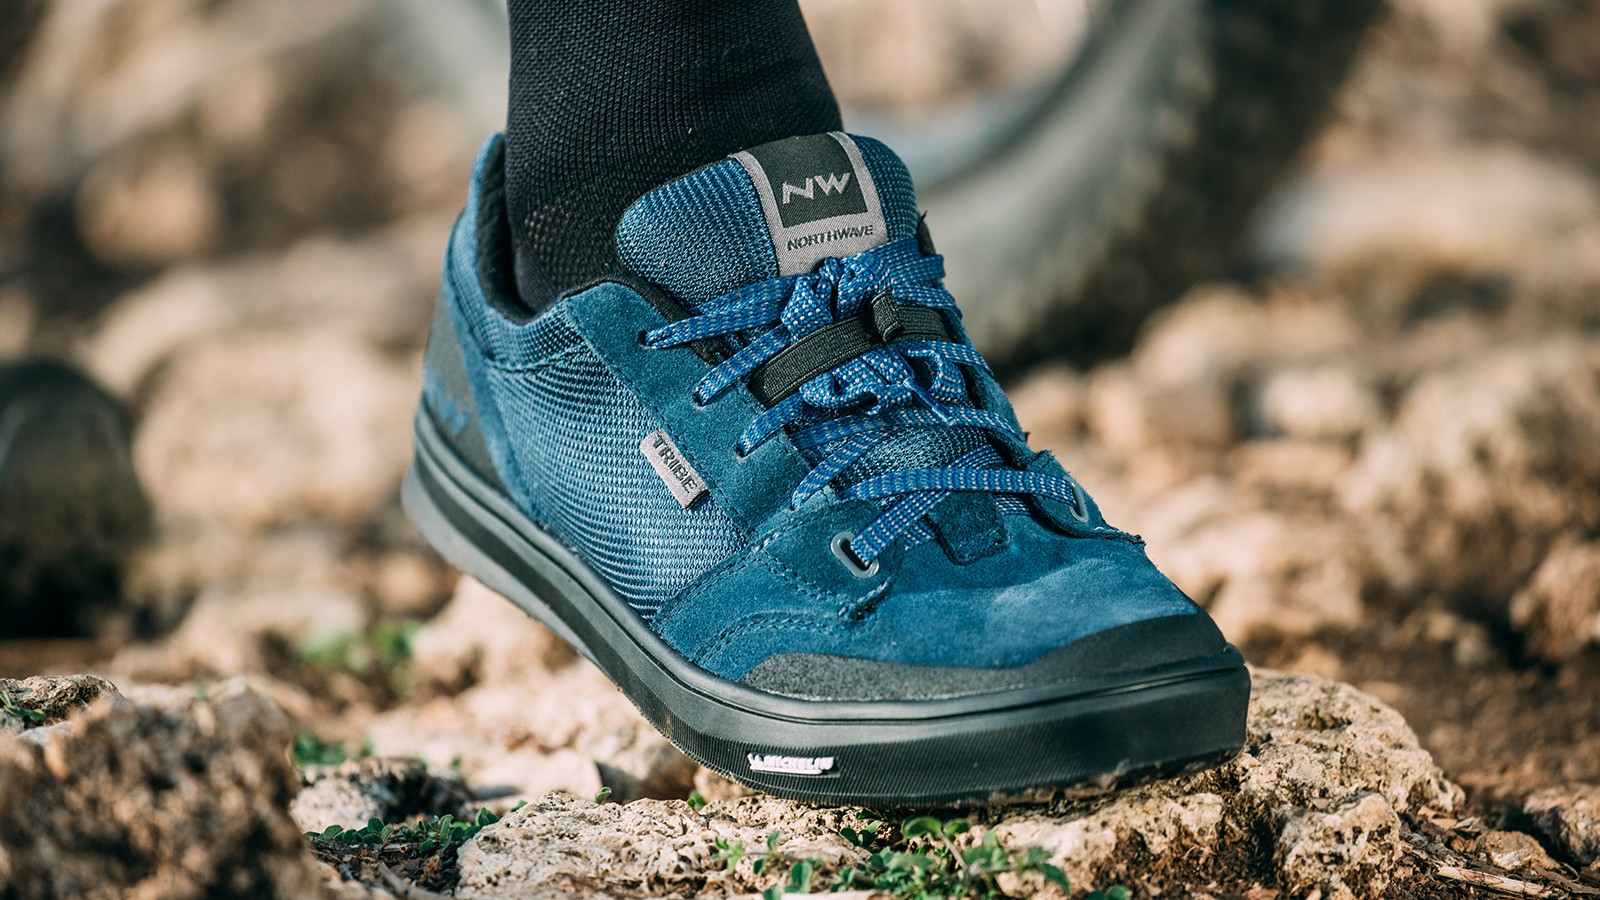 Northwave introduces flat shoes to its range, this is the 'Tribe'